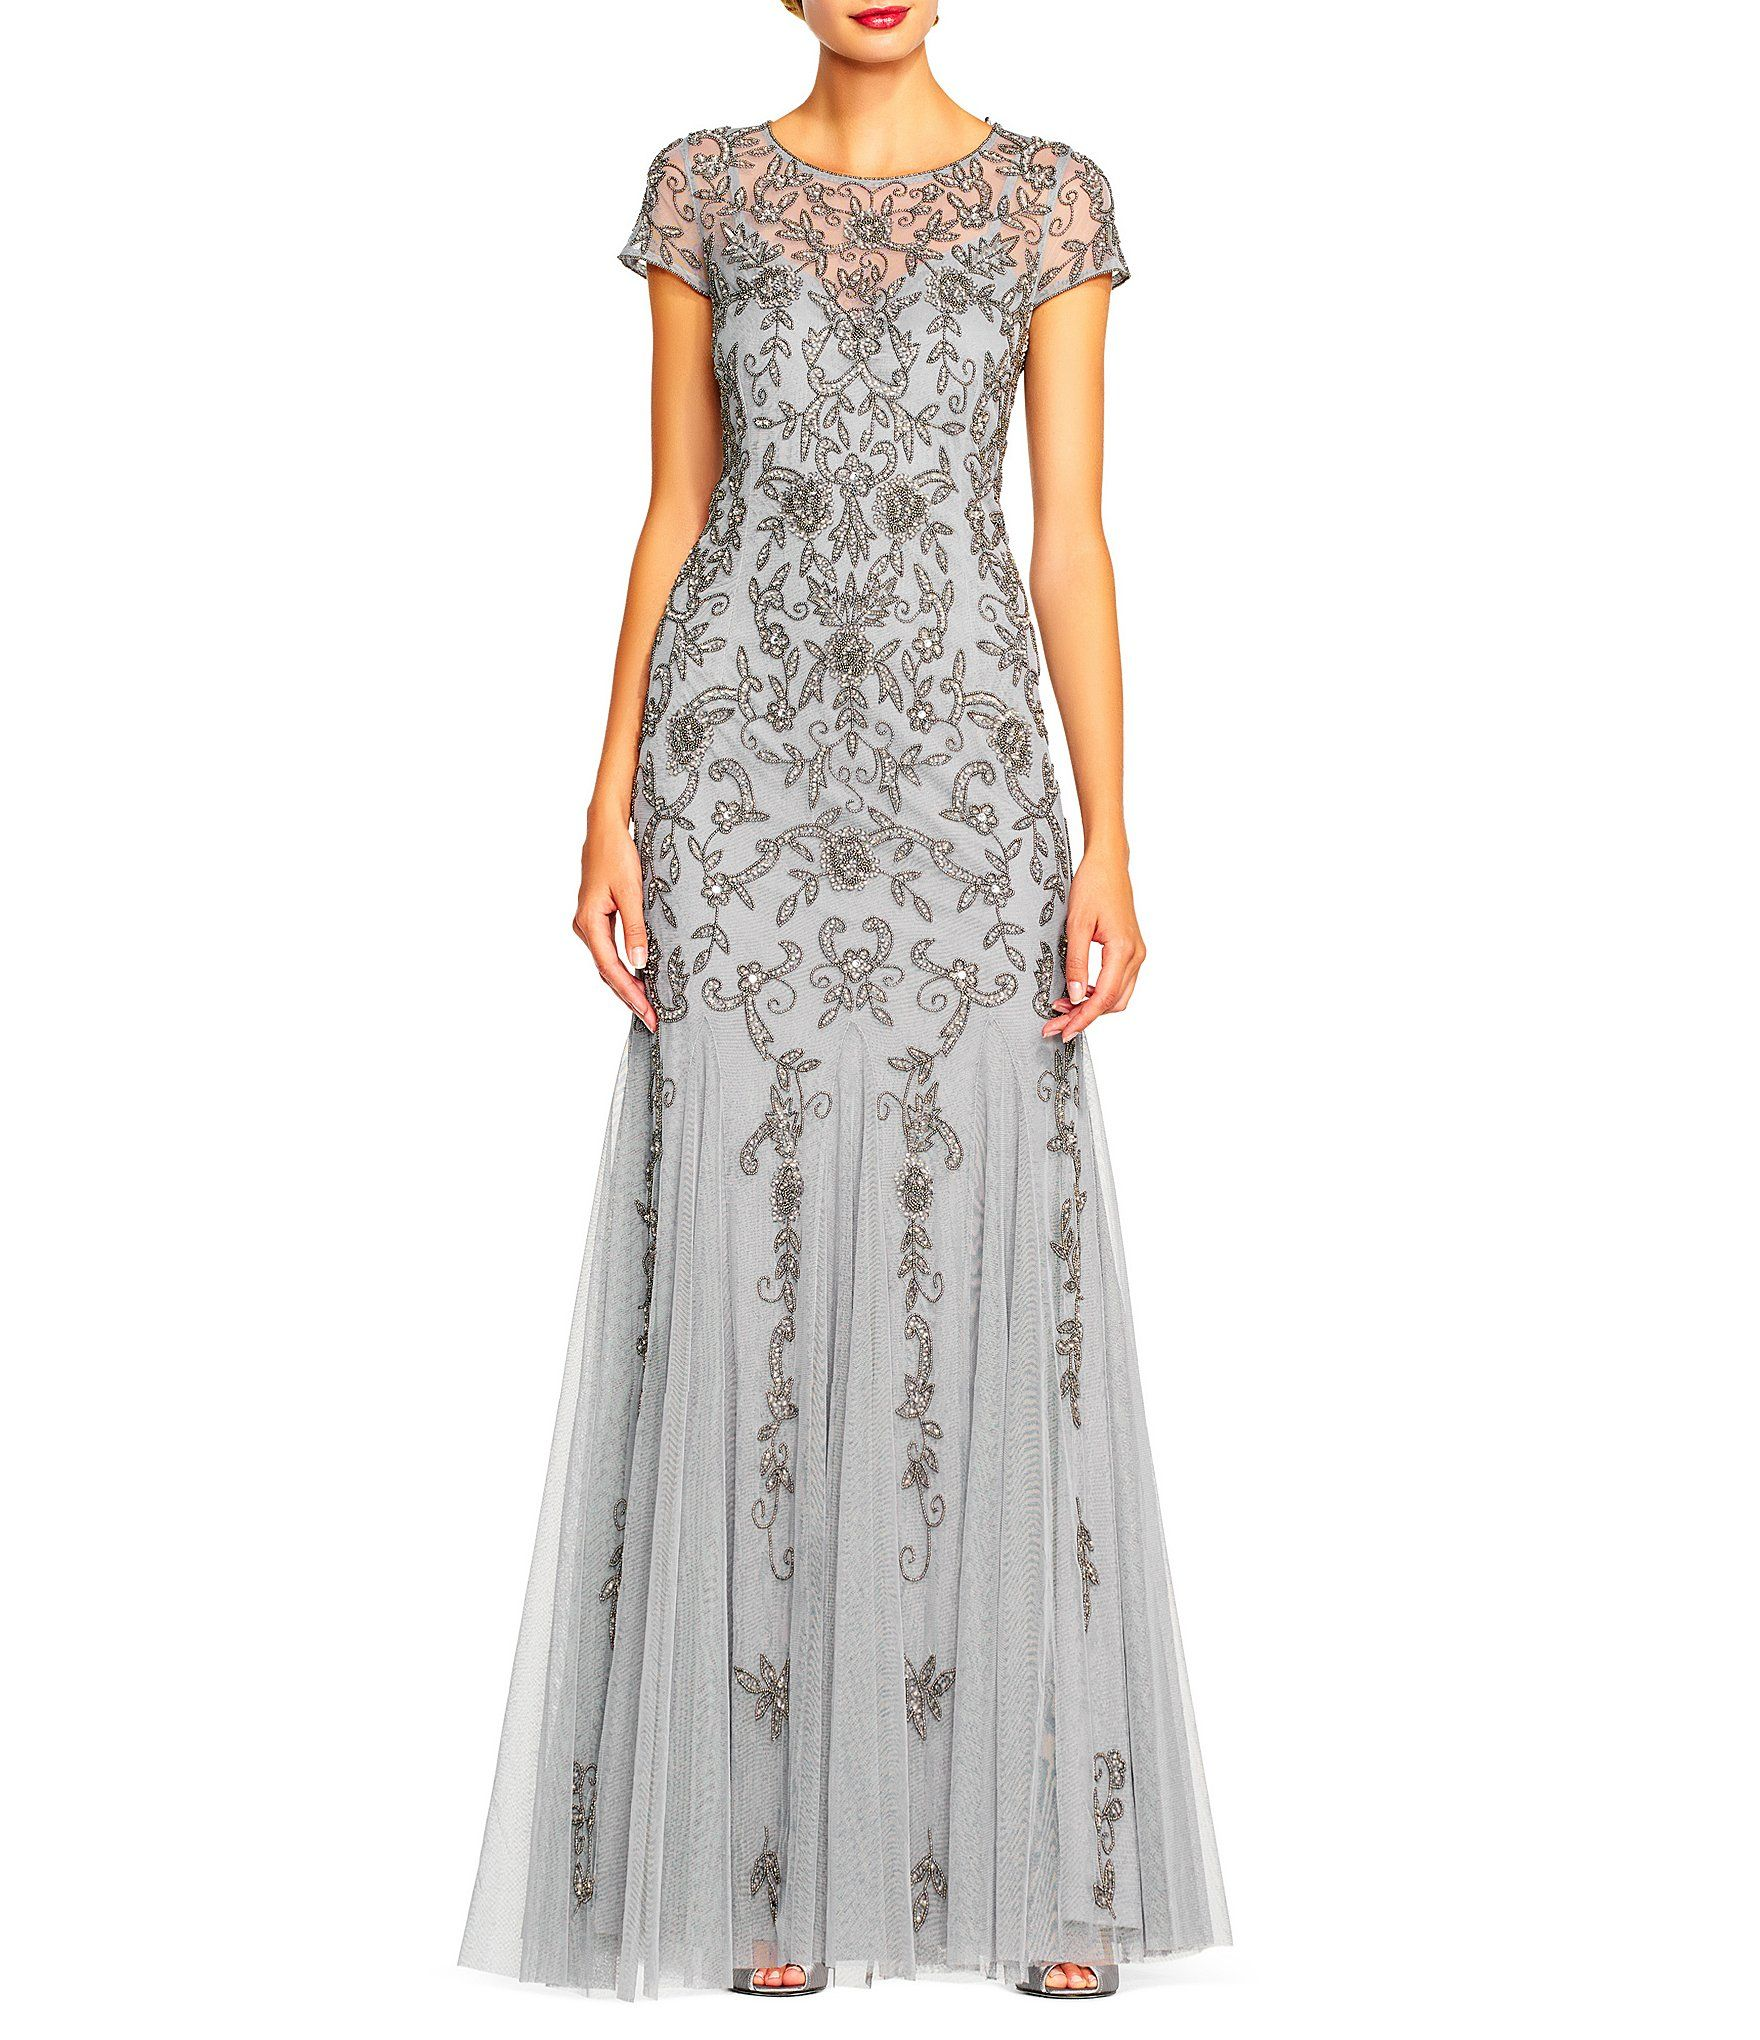 Adrianna Papell Beaded Gown #Dillards | Our wedding day | Pinterest ...